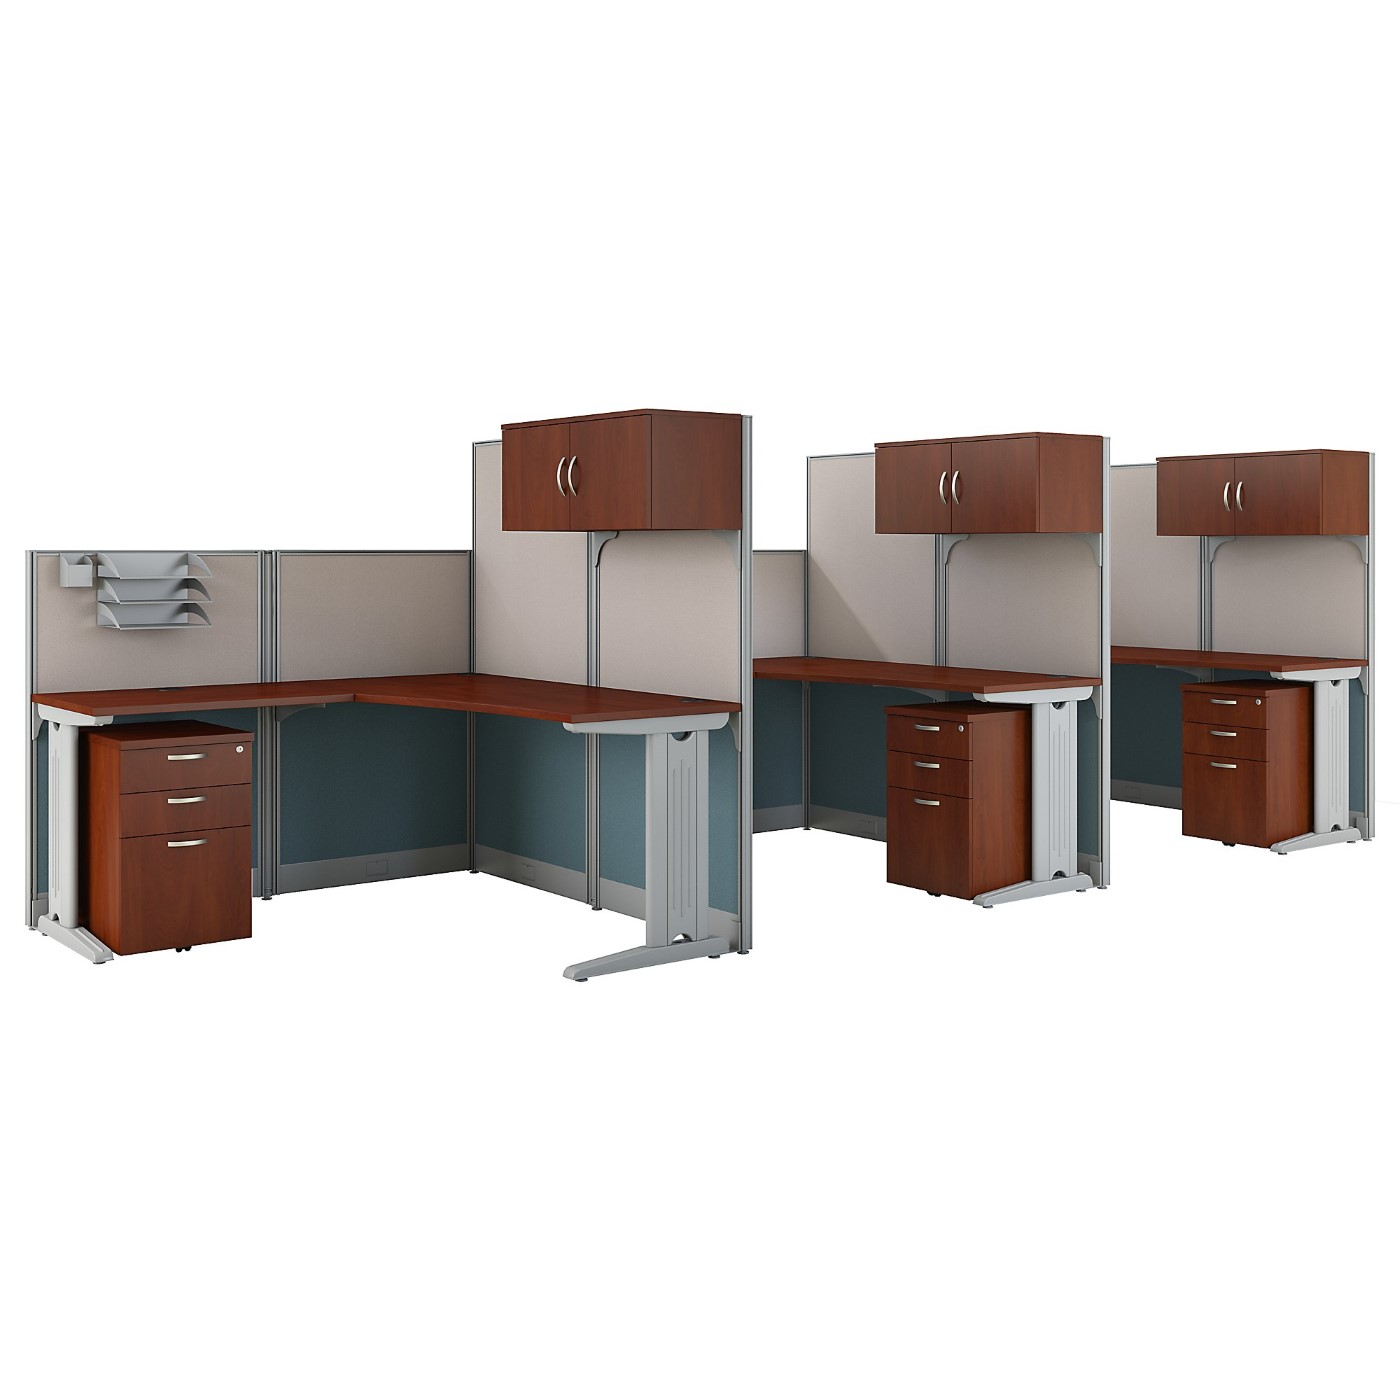 BUSH BUSINESS FURNITURE OFFICE IN AN HOUR 3 PERSON L SHAPED CUBICLE WORKSTATIONS. FREE SHIPPING SALE DEDUCT 10% MORE ENTER '10percent' IN COUPON CODE BOX WHILE CHECKING OUT. ENDS 5-31-20.